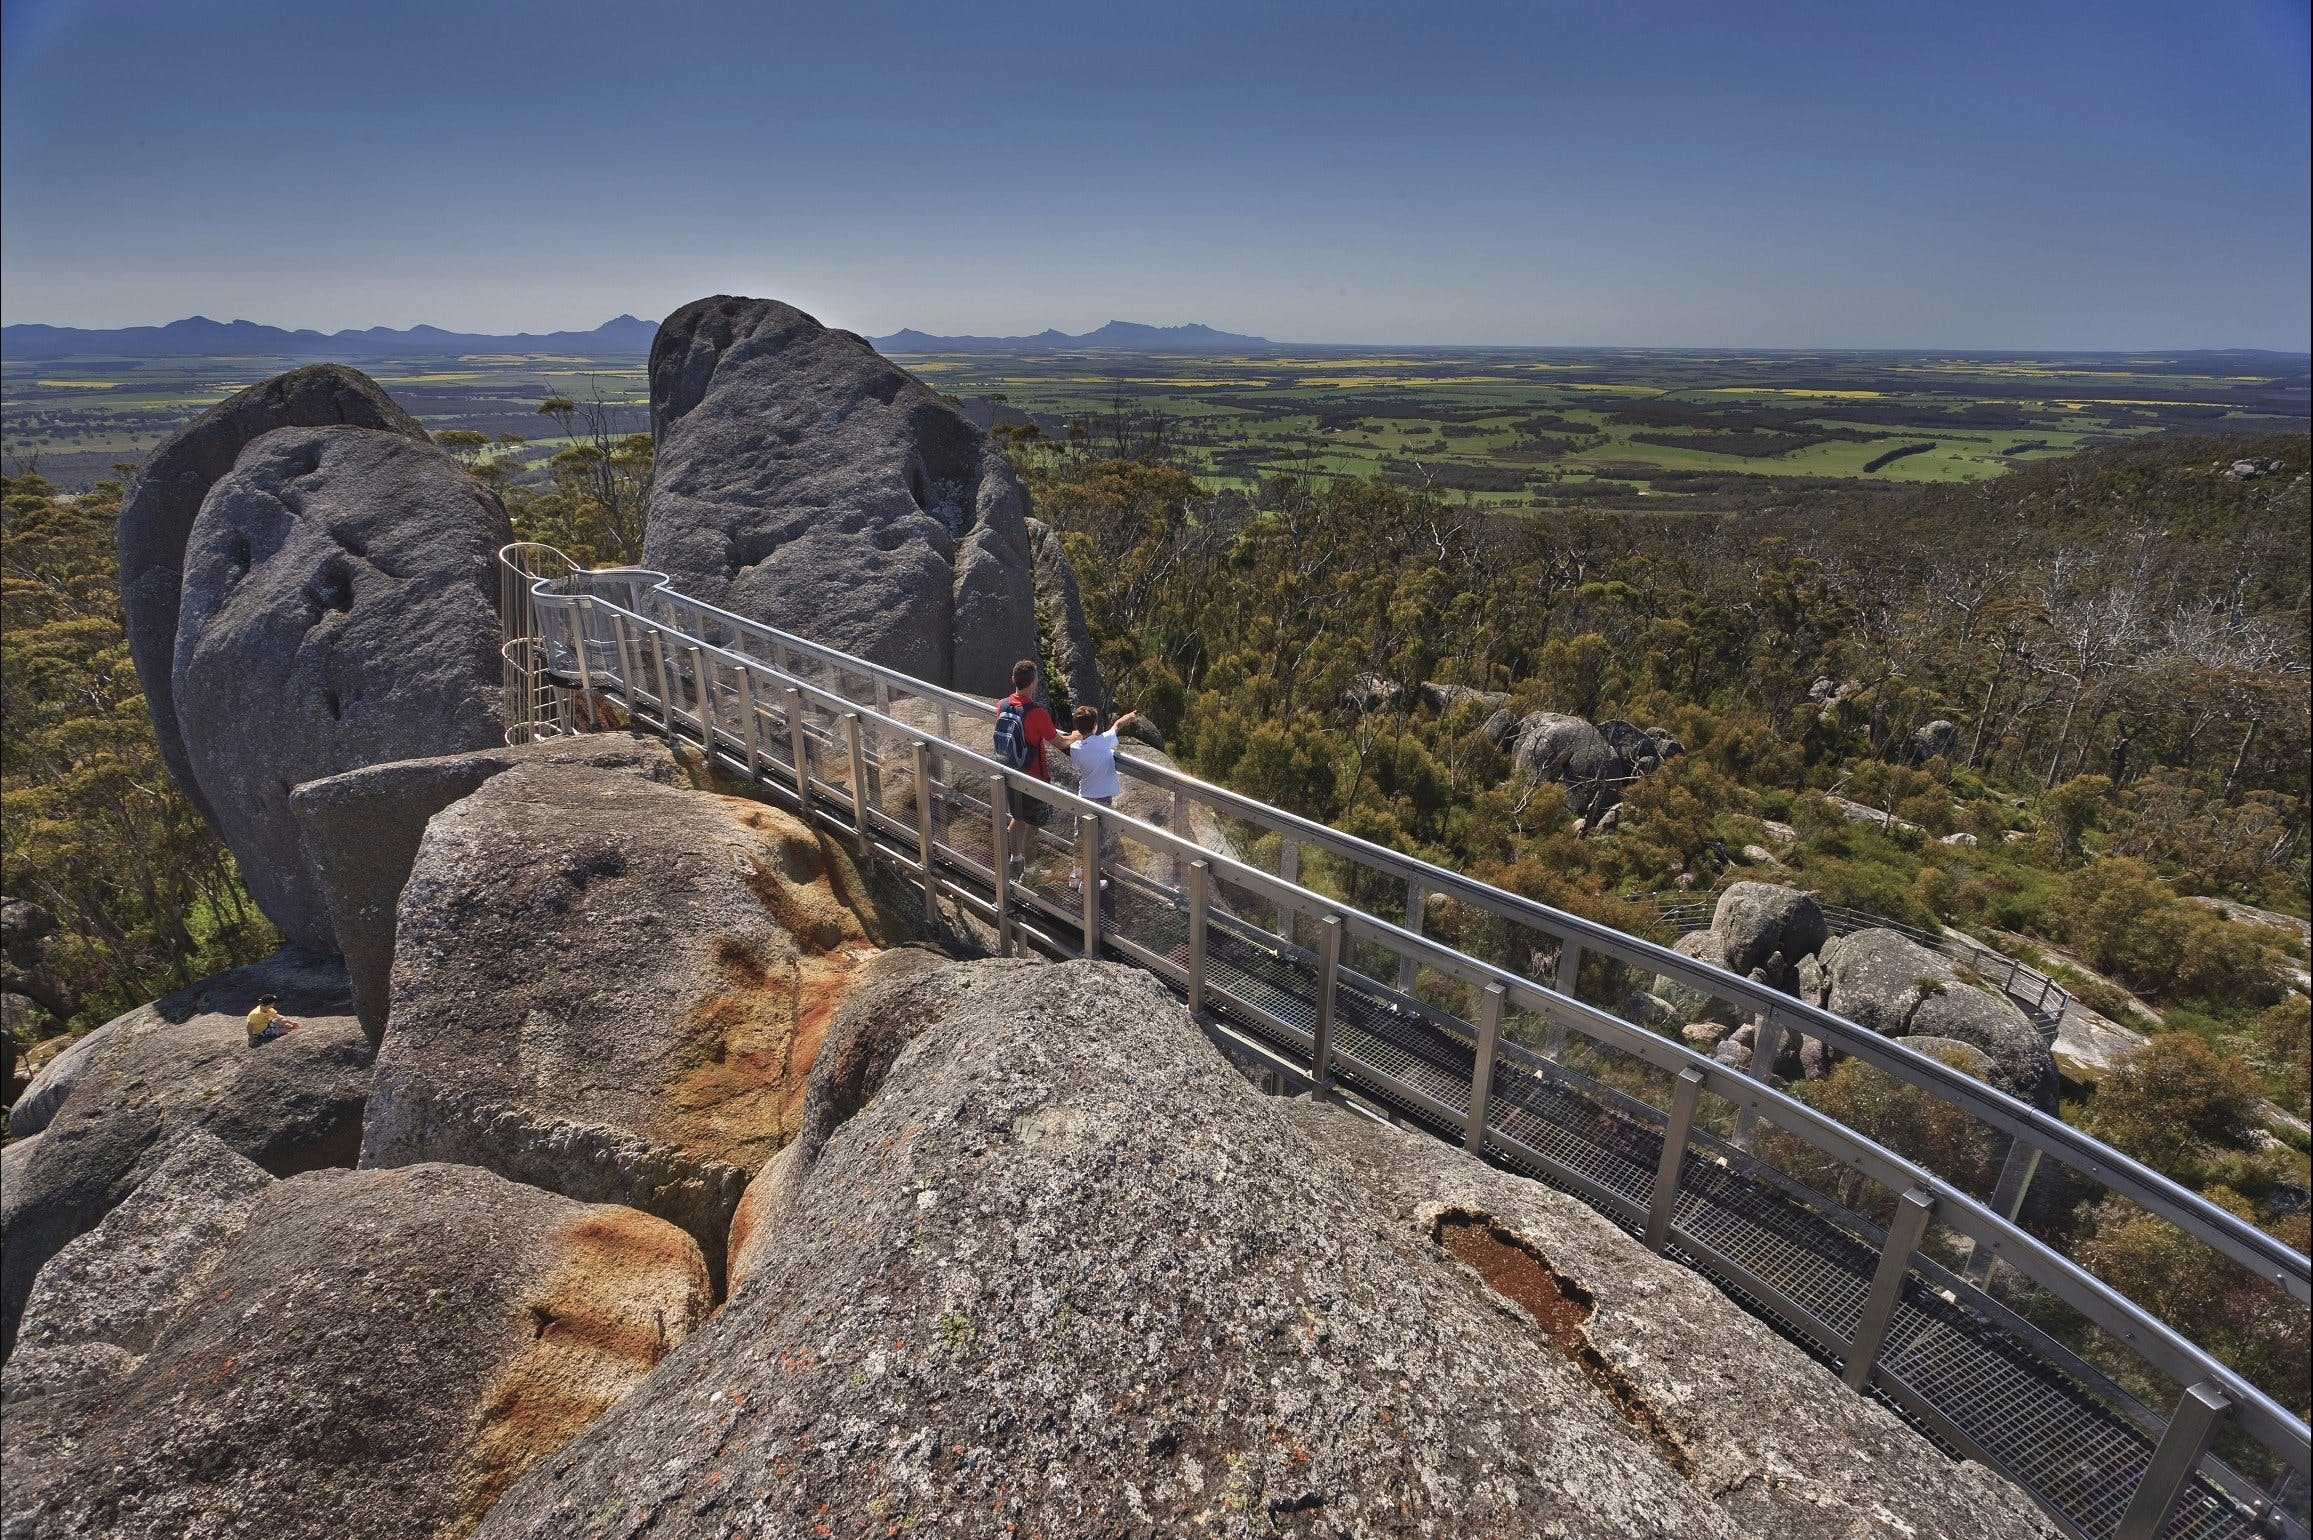 Granite Skywalk - Accommodation Search